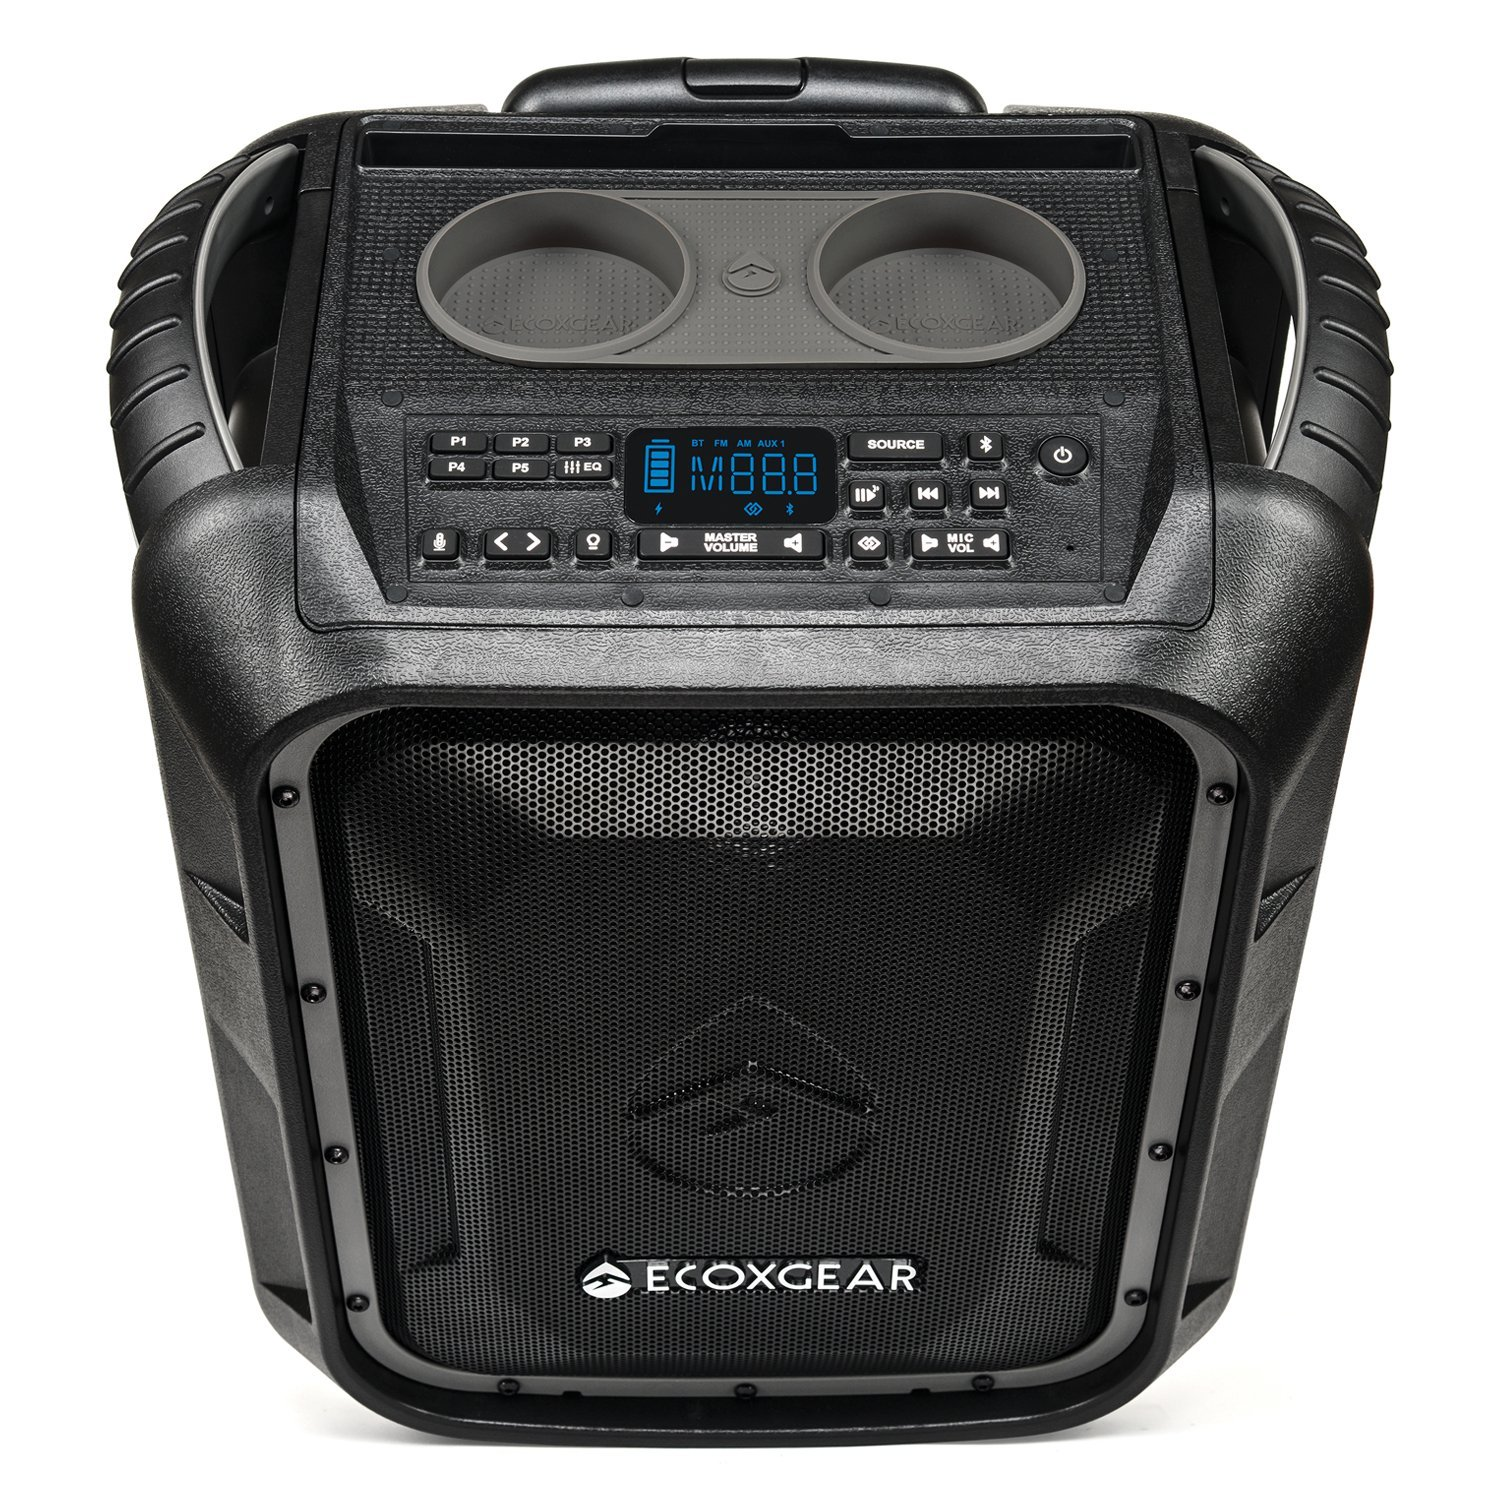 ECOXGEAR GDI-EXBLD810 Waterproof Portable Bluetooth/AM/FM Wireless 100W Speaker & PA system, $199 @amazon.com